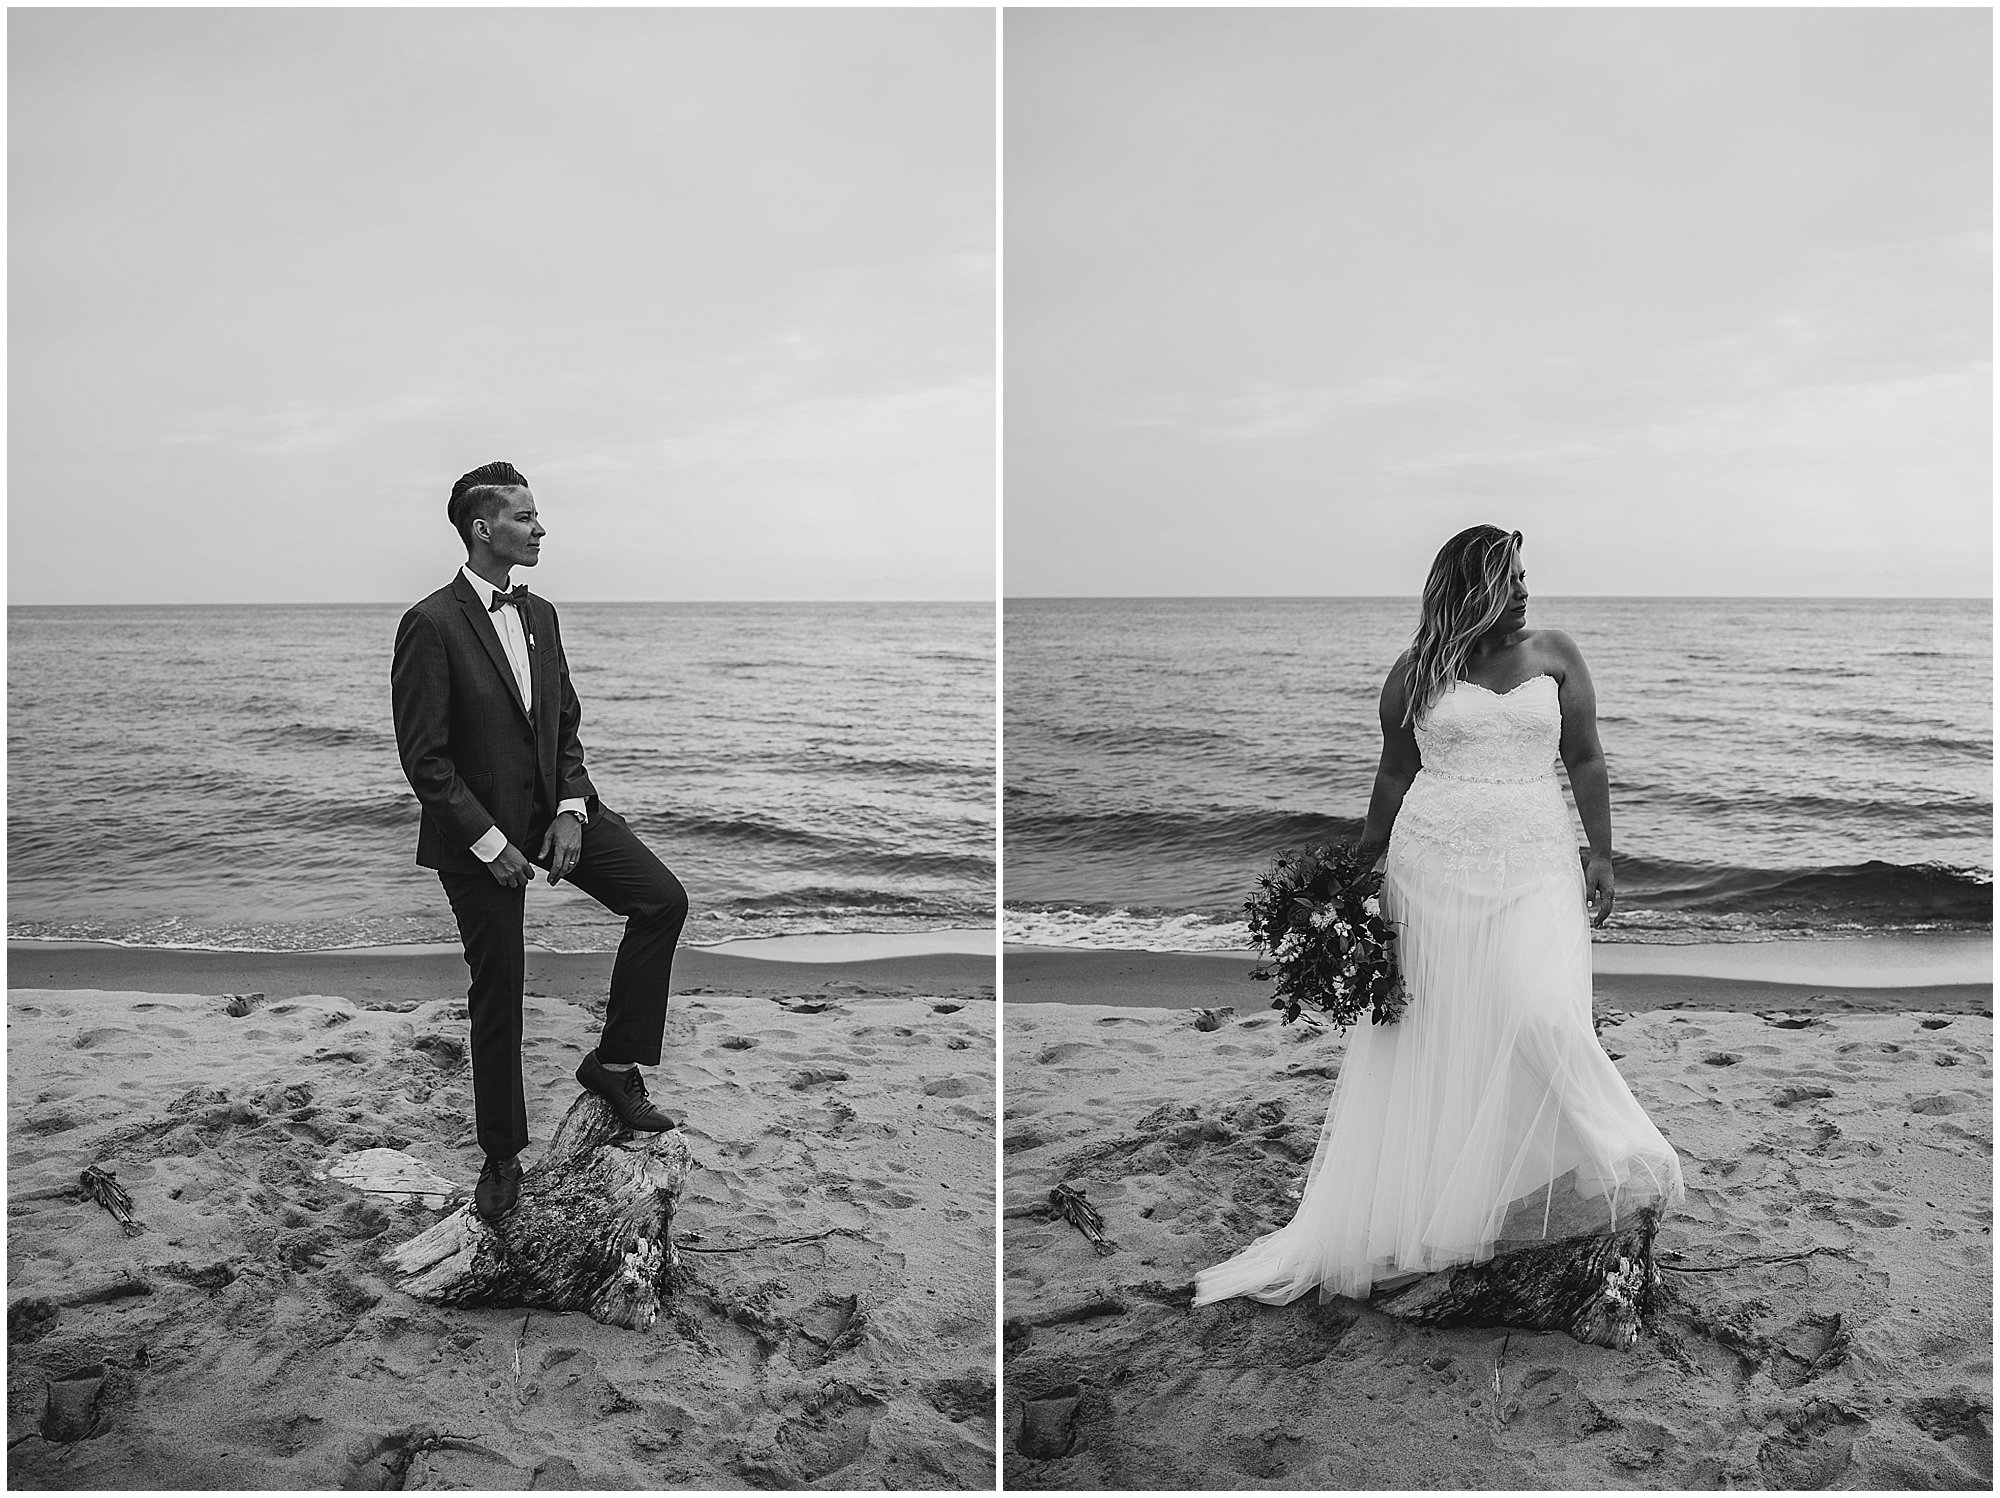 lgbtq wedding couple on the beach at lake michigan